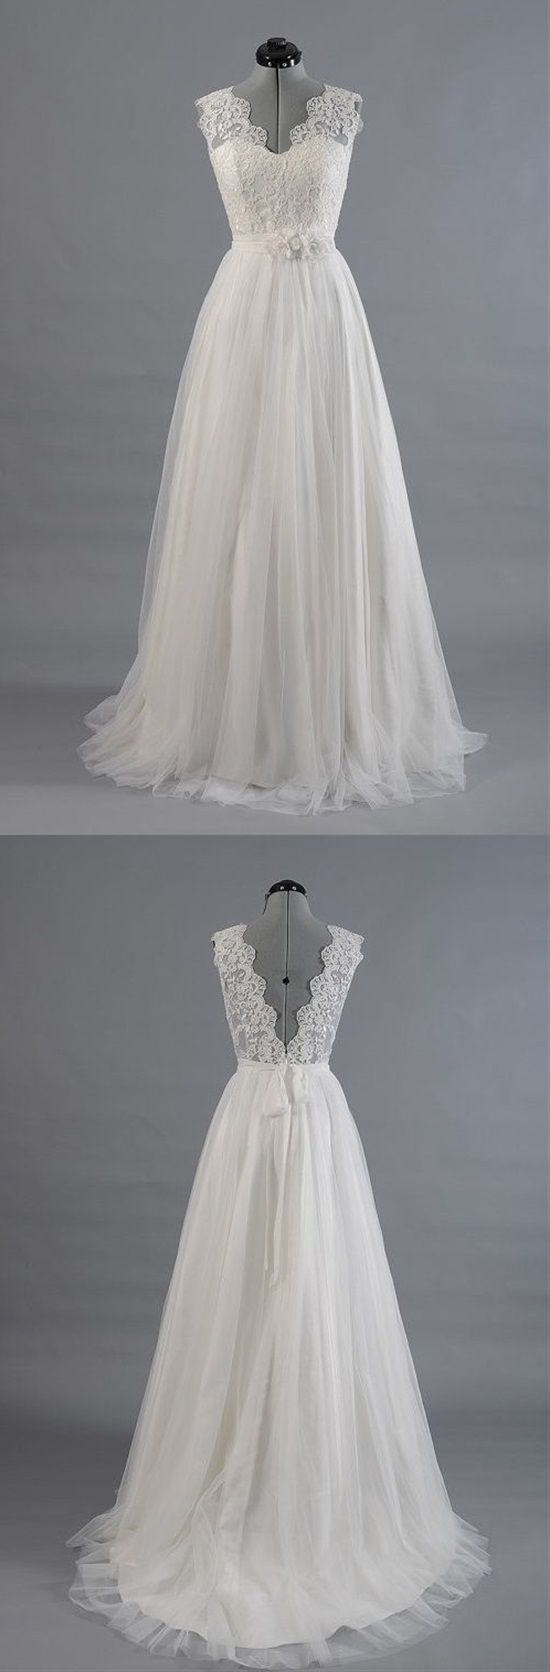 Choosing your wedding dress is the most important part of planning your big day. You want it to be beautiful and unique, you don't want to fall behind trends too. So we brought you a collection of the best wedding dresses this year, to keep your big day unique and trendy. Women, Men and Kids Outfit Ideas on our website at 7ootd.com #ootd #7ootd